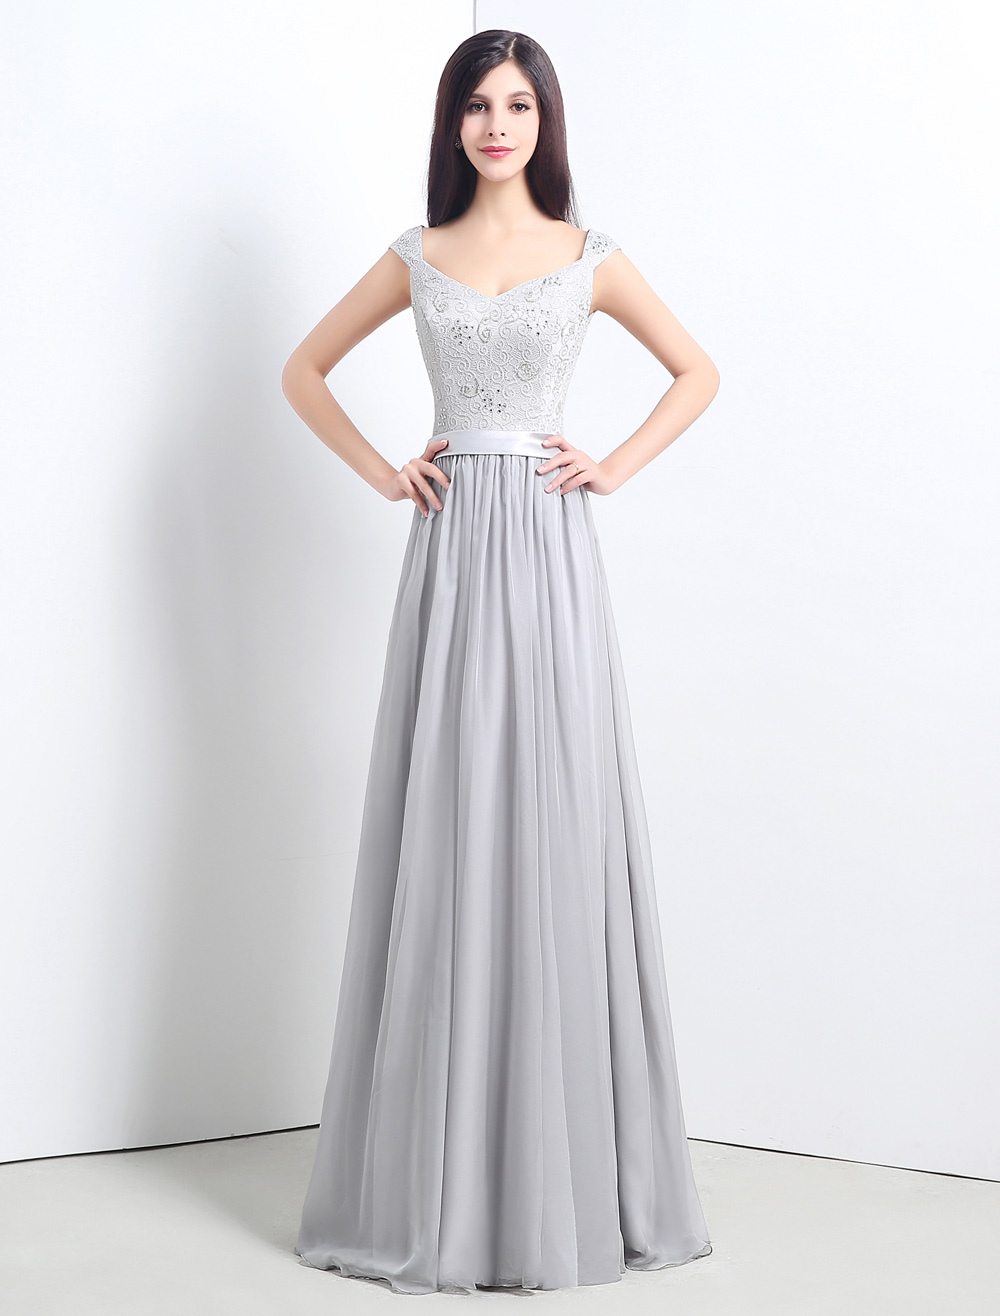 Silver Gray Bridesmaid Dresses Chiffon Floor Length Cap Sleeve Bridesmaid Dress With Lace Bodice